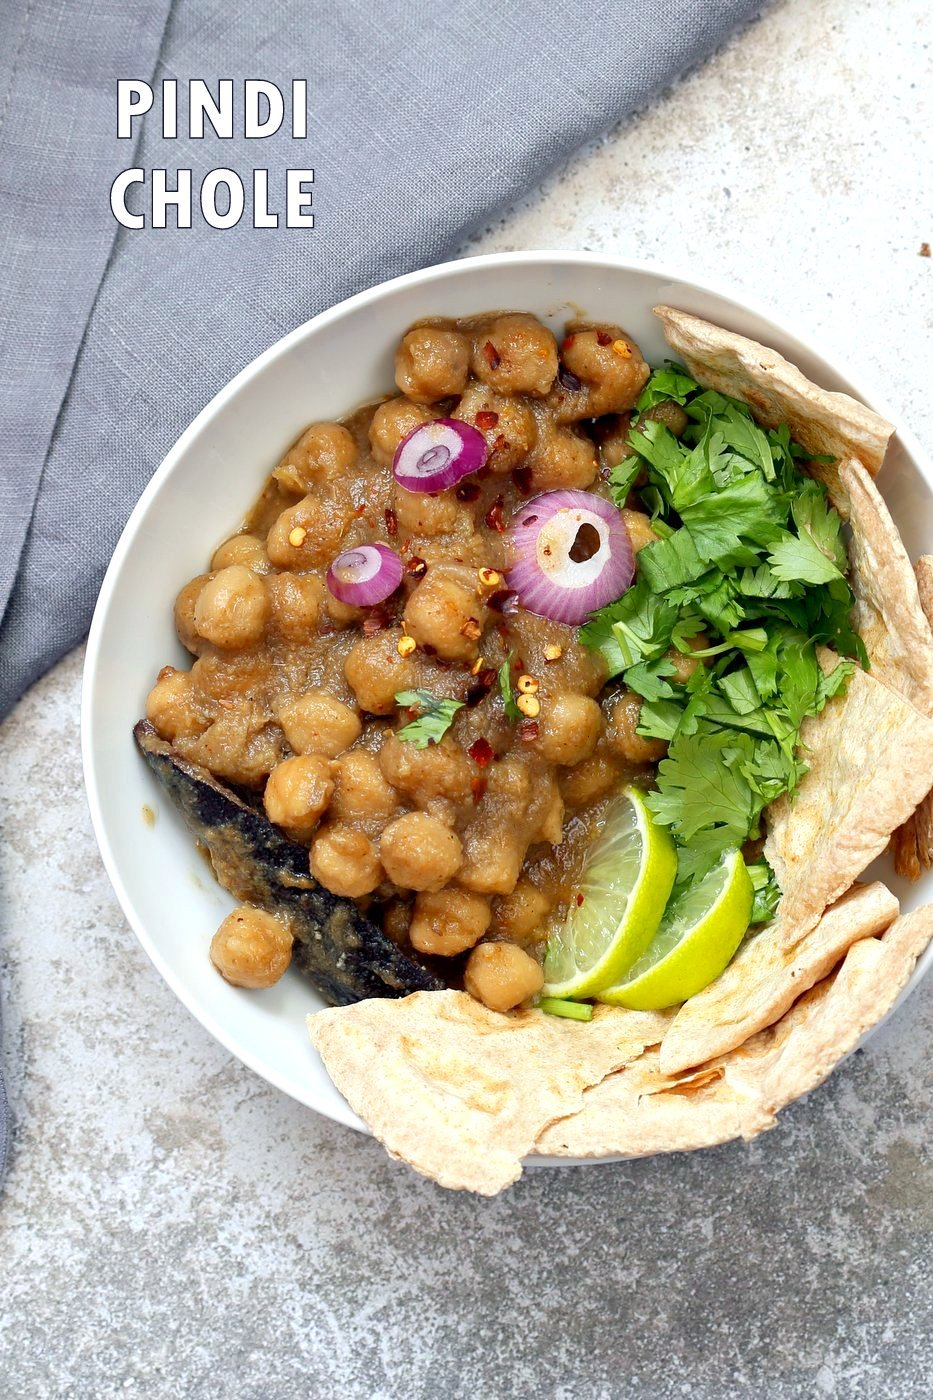 Pindi Chole - Chickpea Curry with Whole Spices. Chickpeas cooked with whole spices then added to a sauce with caramelized onions. Punjabi Chole Adapted from Rawalpindi style Chole. Instant Pot or Saucepan)Vegan Gluten-free Nut-free Soy-free Recipe | VeganRicha.com